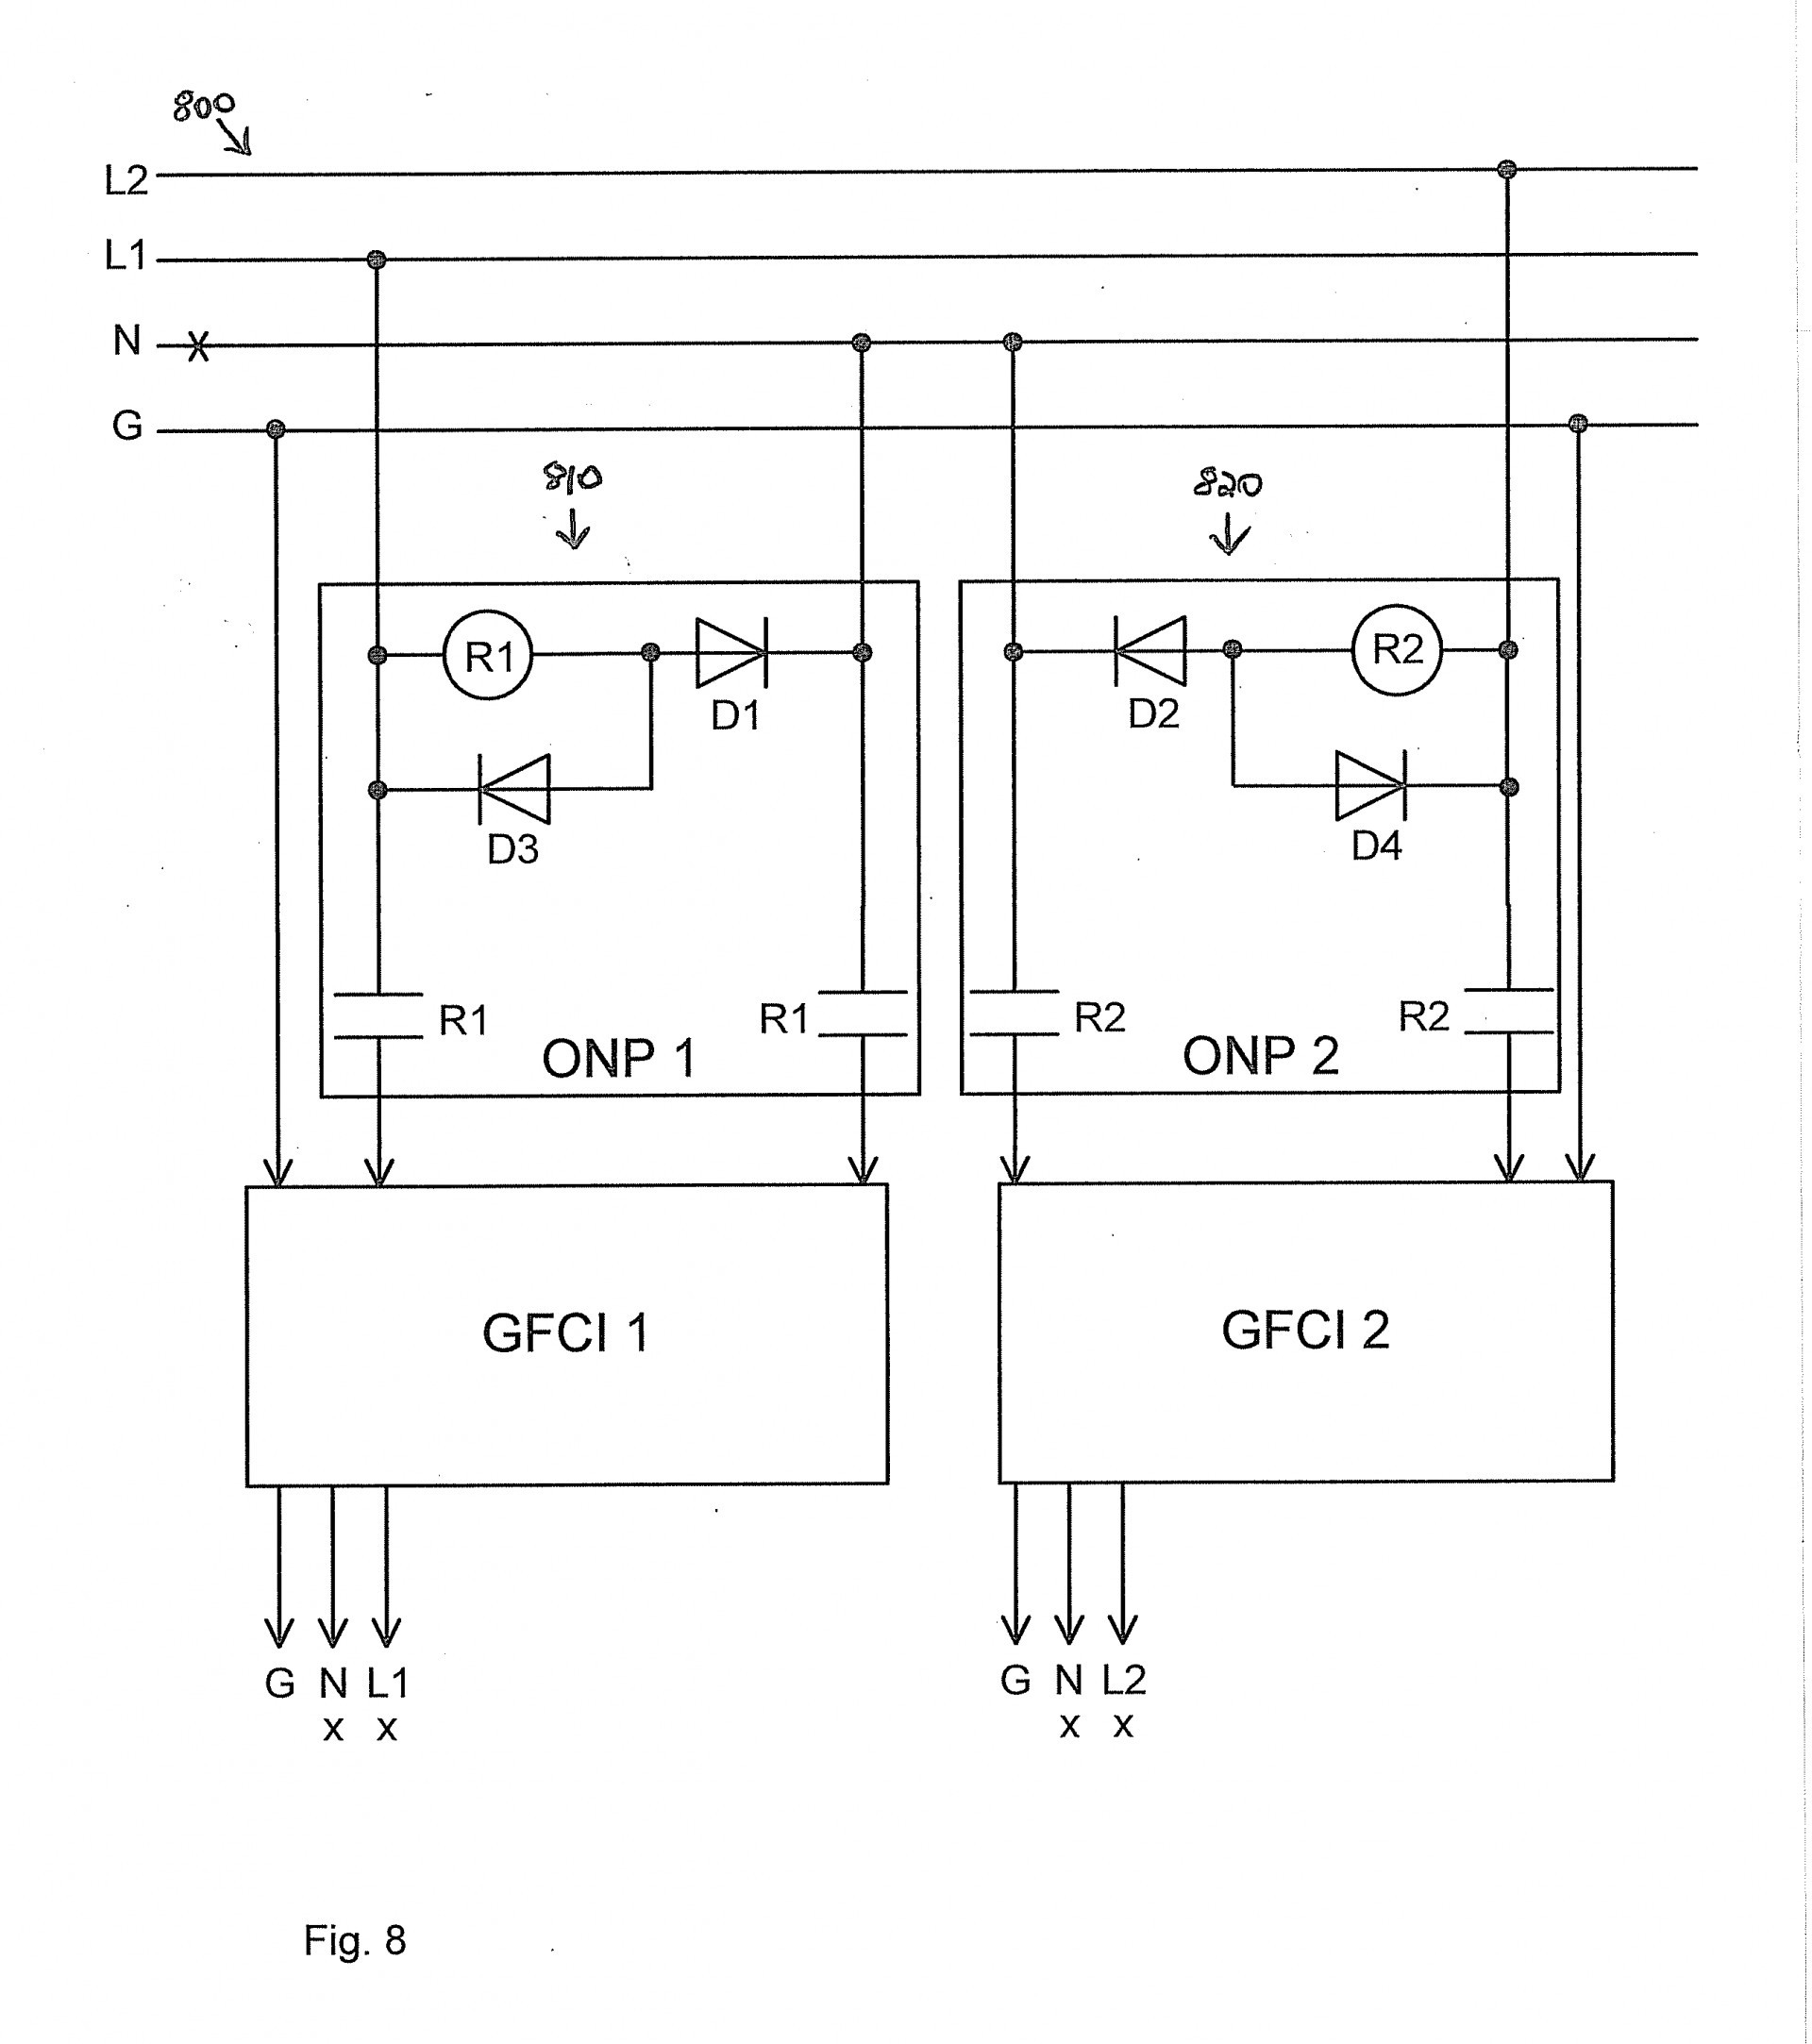 Gfci Wiring With Unprotected Switch And Light Diy Crafts Diagram For Gfi Feed Through Method Electrical Leviton